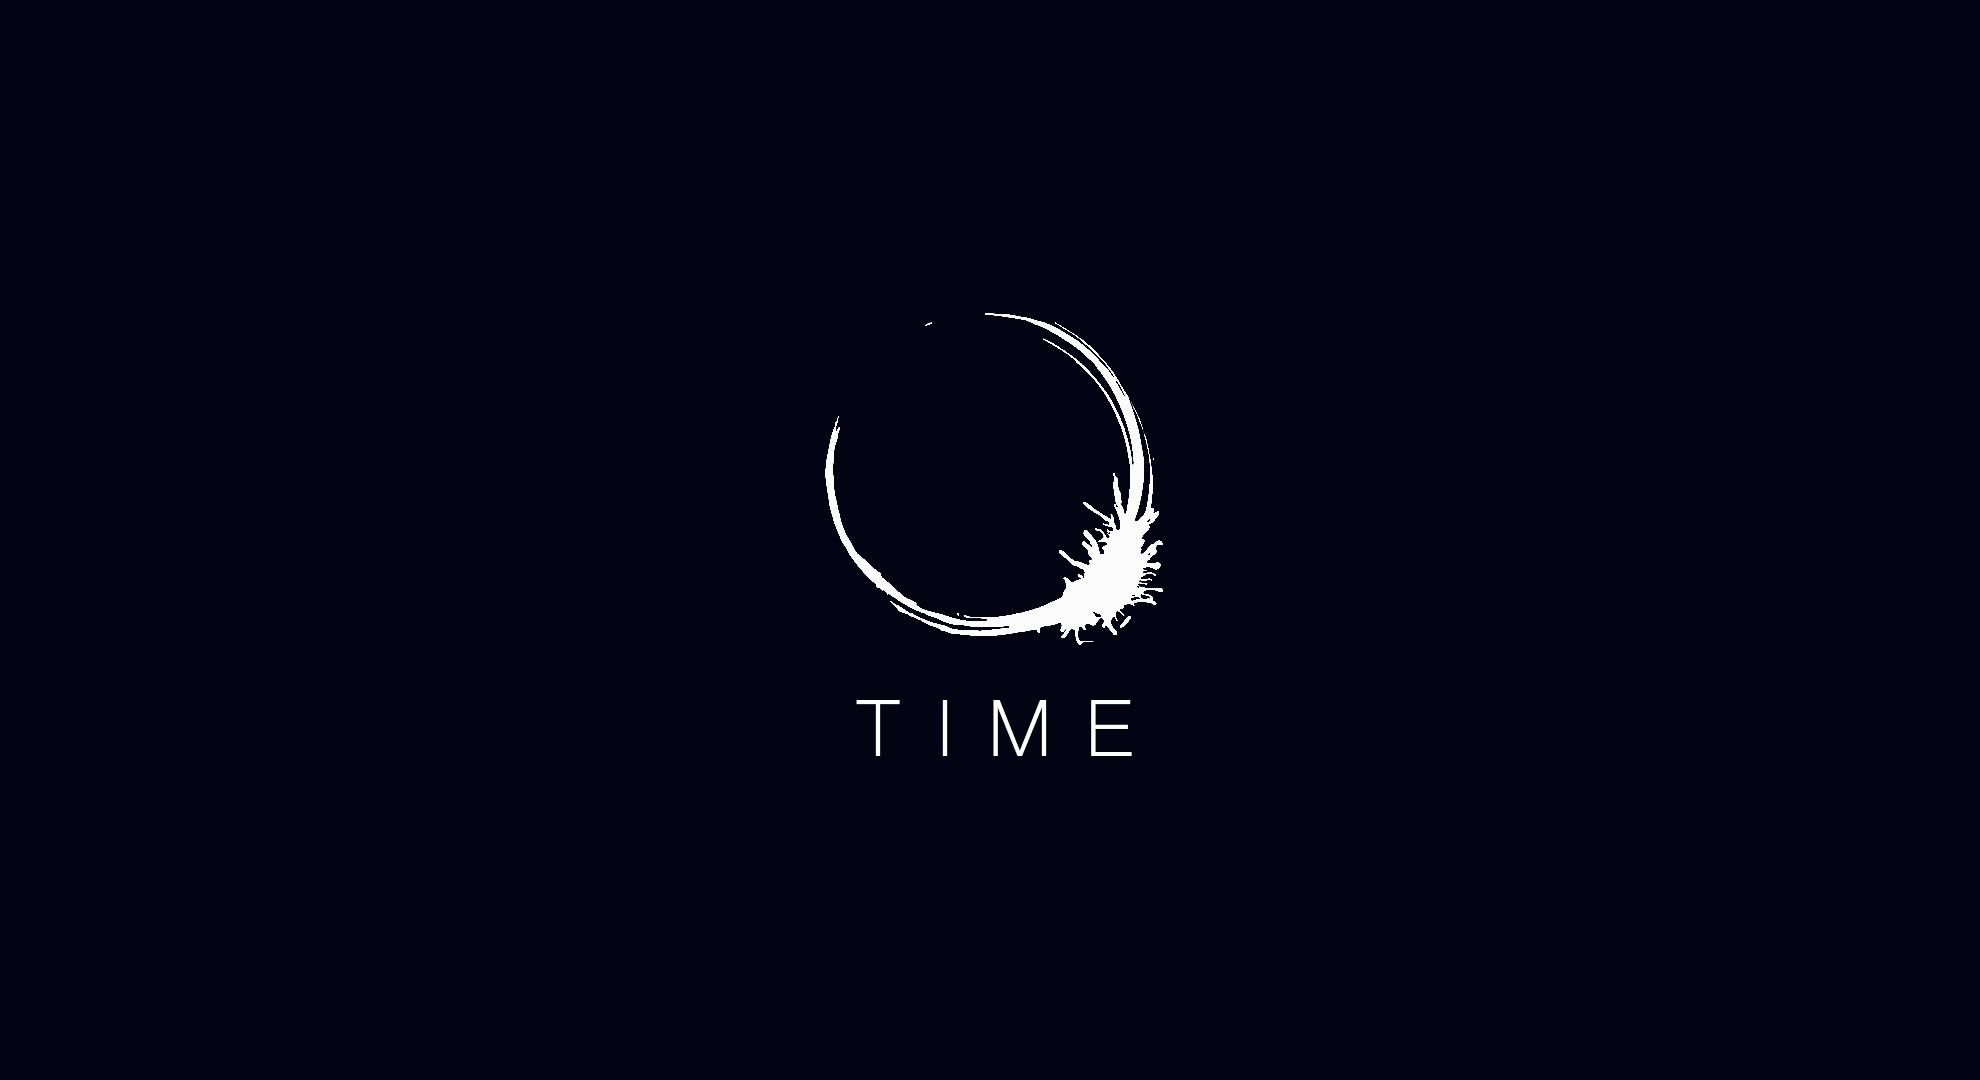 Time In Heptapod Language From The Movie Arrival 1920x1080 Series E Filmes Filmes Filme A Chegada